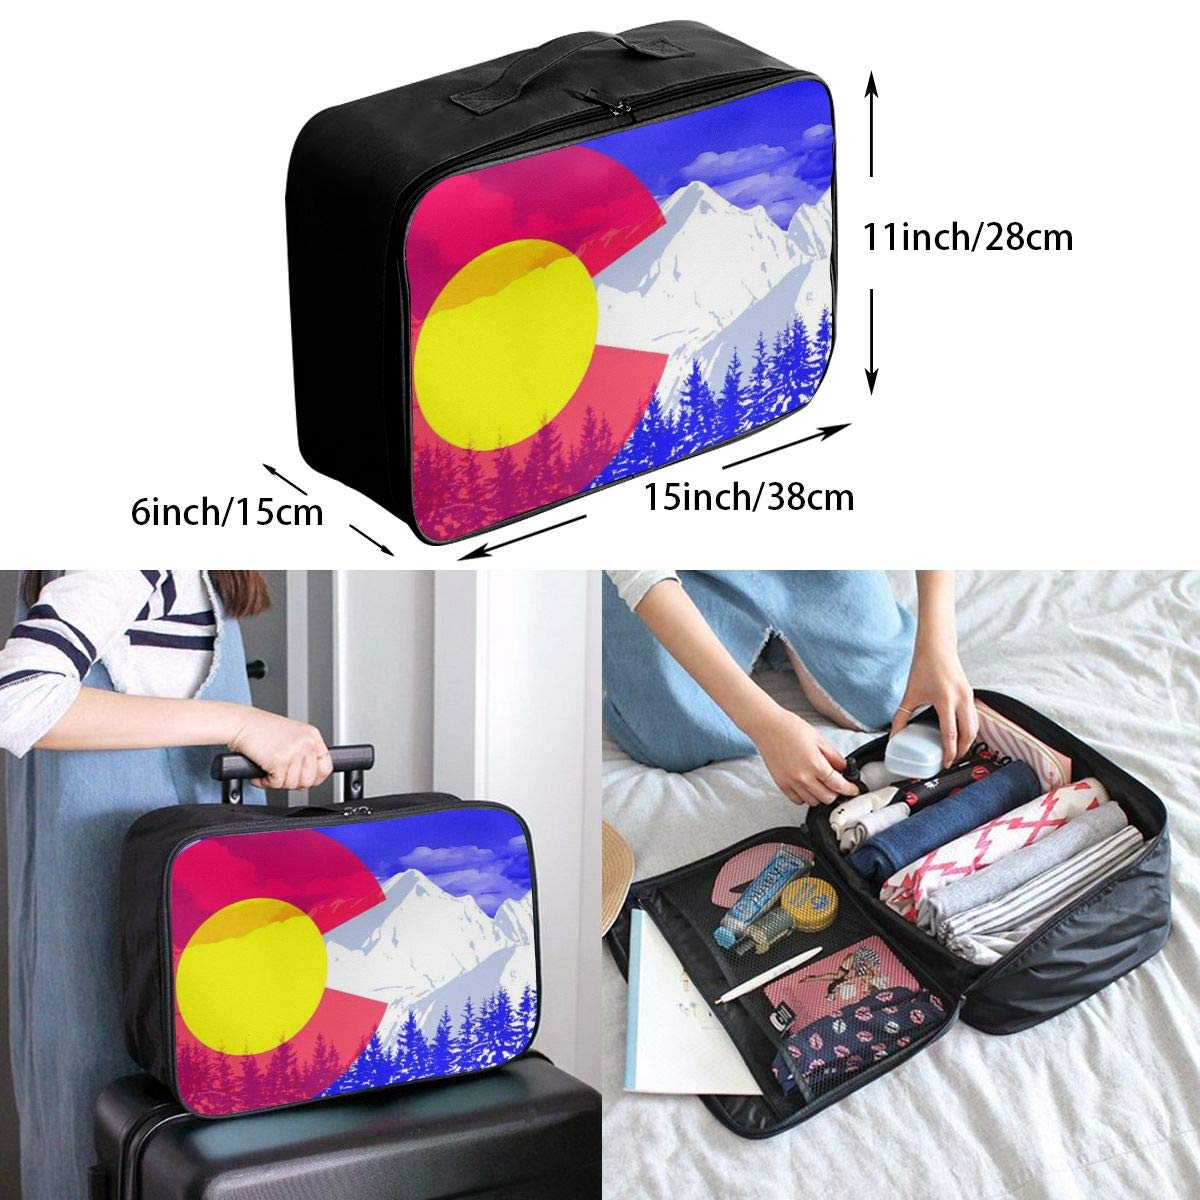 YueLJB Colorado Snow Mountain Lightweight Large Capacity Portable Luggage Bag Travel Duffel Bag Storage Carry Luggage Duffle Tote Bag